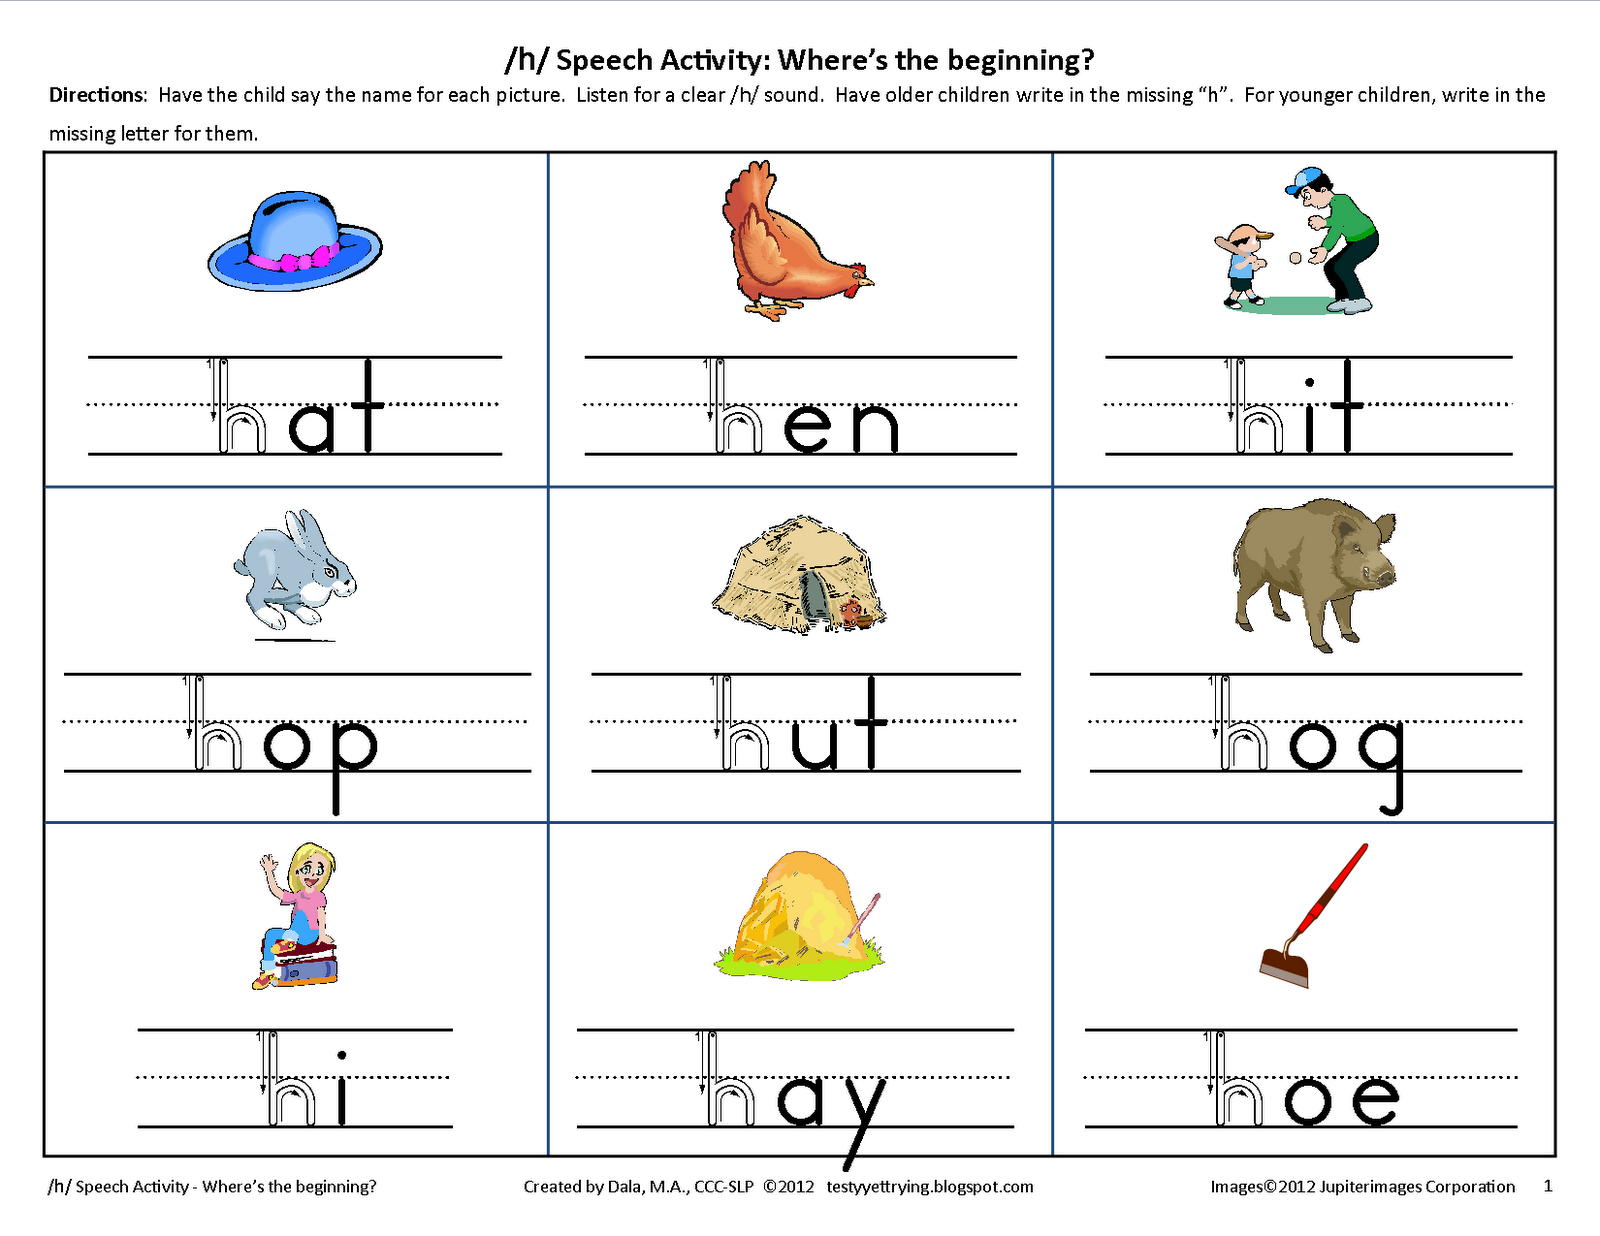 Proatmealus  Unusual Testy Yet Trying Initial H Speech Worksheet With Extraordinary Make Classroom Teachers Happy Reinforce Phonics And Handwriting And Practice Speech All At The Same Time With Charming Counting To  Worksheet Also D Shapes Worksheet Year  In Addition Yr  English Worksheets And Multiples Of  Worksheets As Well As Measurement Worksheets For Rd Grade Additionally Handwriting Free Printable Worksheets From Testyyettryingblogspotcom With Proatmealus  Extraordinary Testy Yet Trying Initial H Speech Worksheet With Charming Make Classroom Teachers Happy Reinforce Phonics And Handwriting And Practice Speech All At The Same Time And Unusual Counting To  Worksheet Also D Shapes Worksheet Year  In Addition Yr  English Worksheets From Testyyettryingblogspotcom